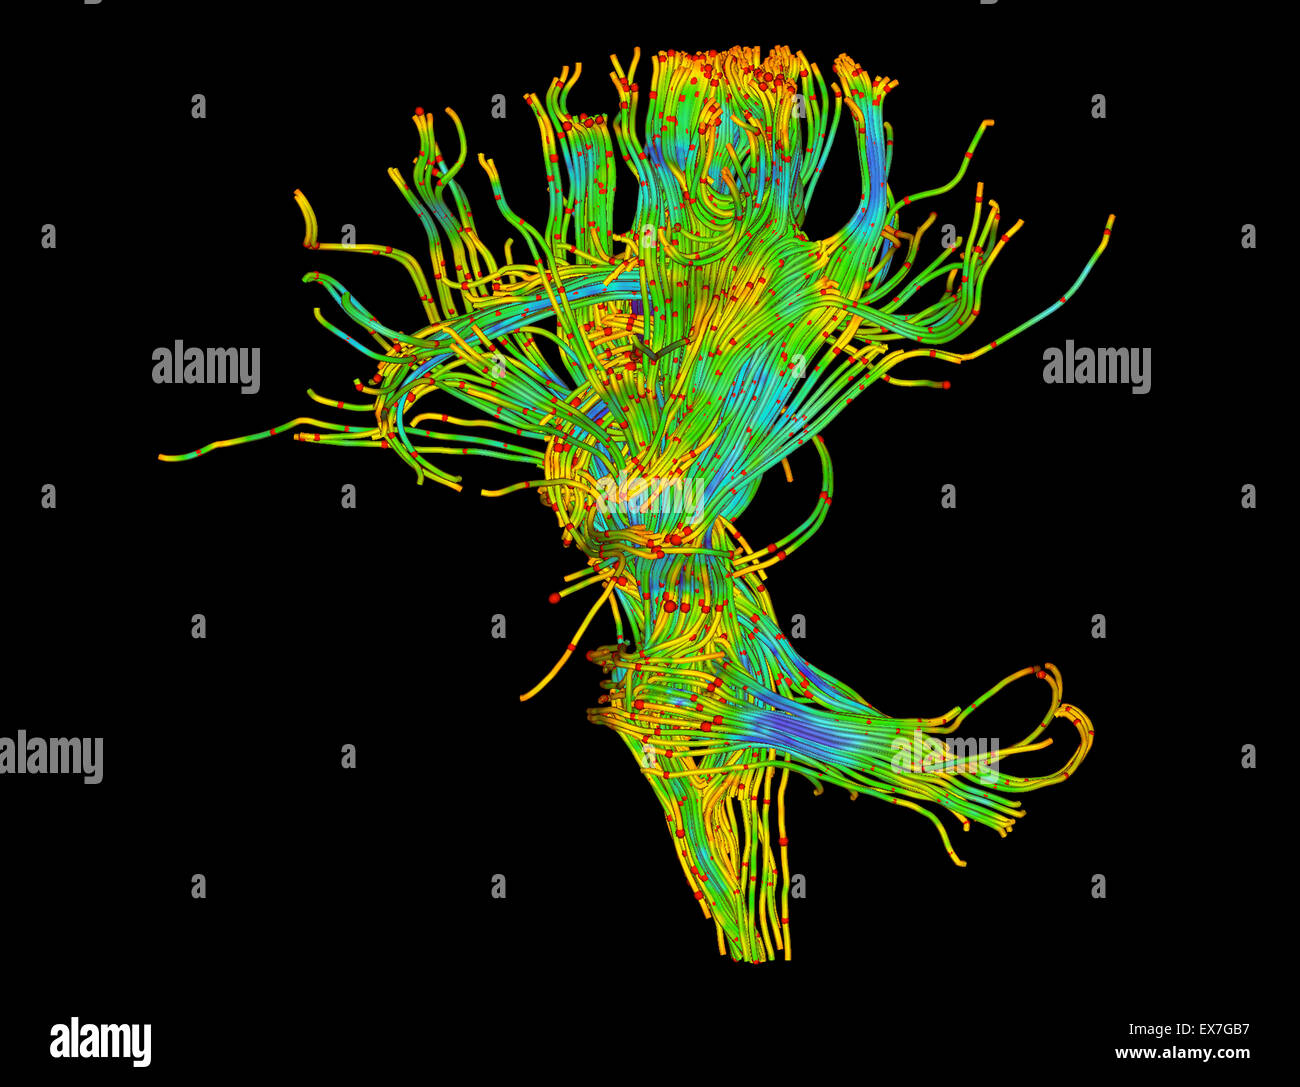 Fiber tractography image of the human brain - Stock Image